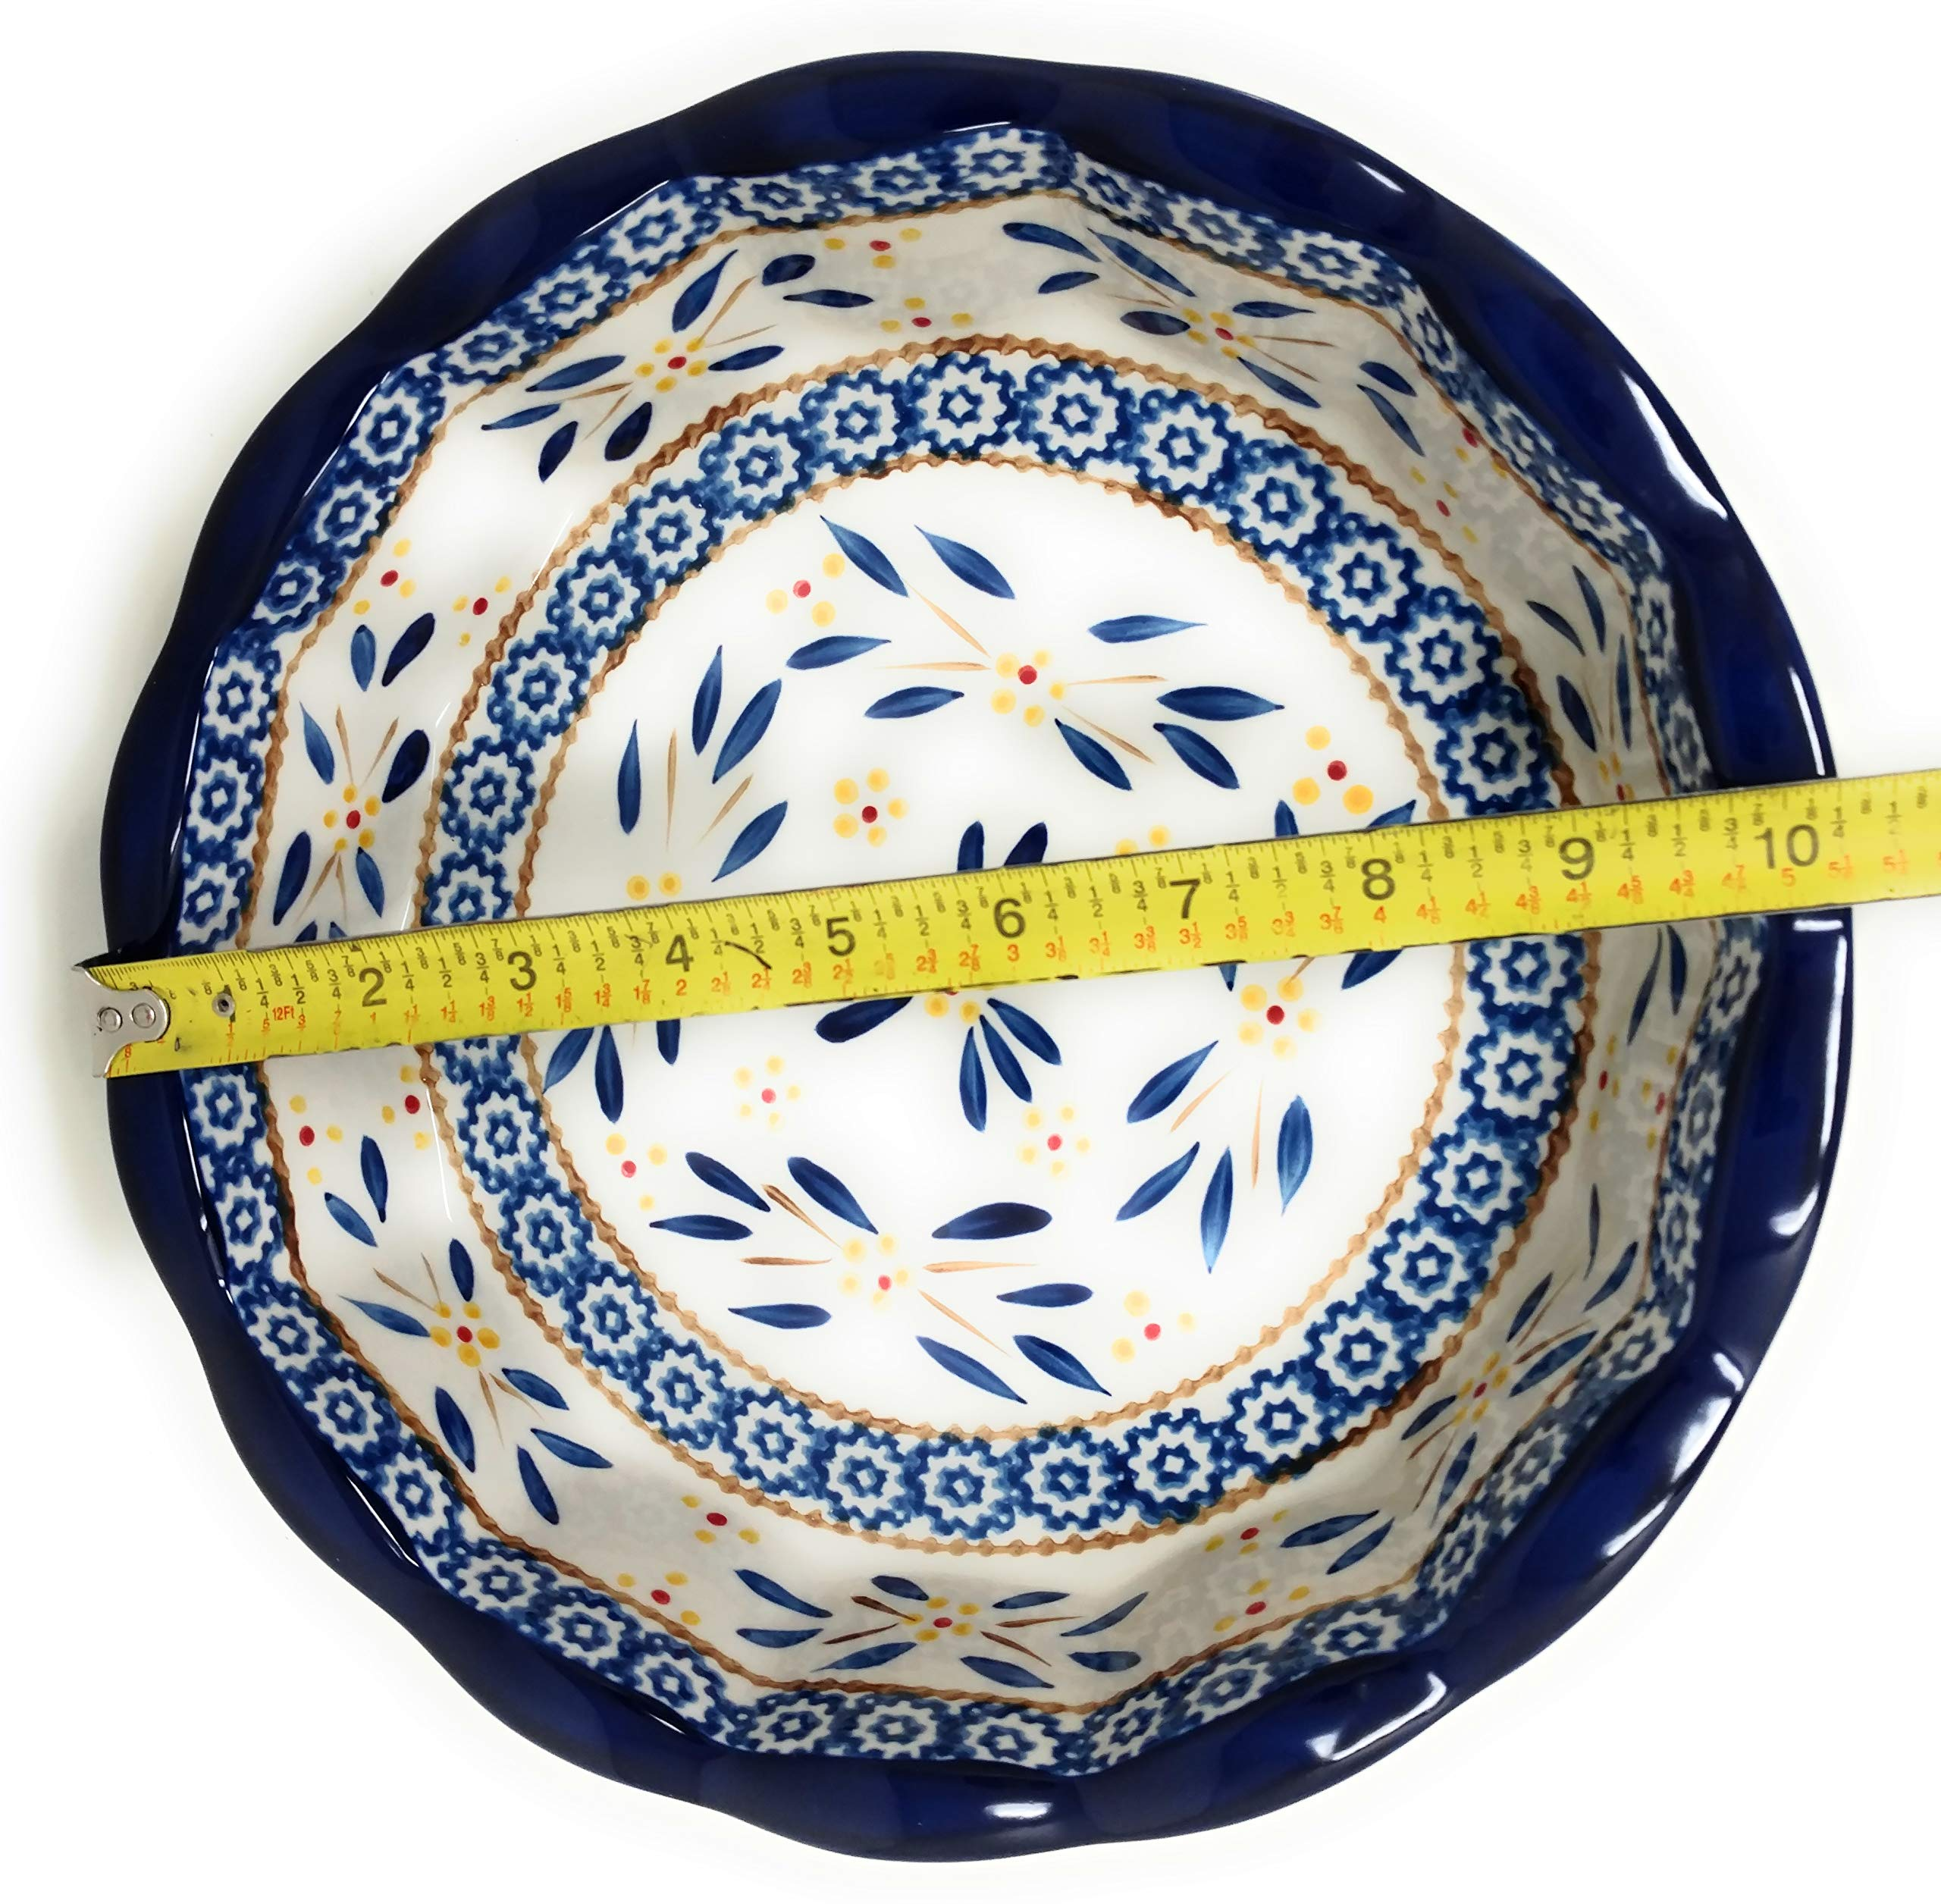 Temp-tations 10'' x 2.25'' Pie Pan w/Cover, Scalloped, Deep Dish Pizza or Quiche (Old World Blue) by Stoneware (Image #6)